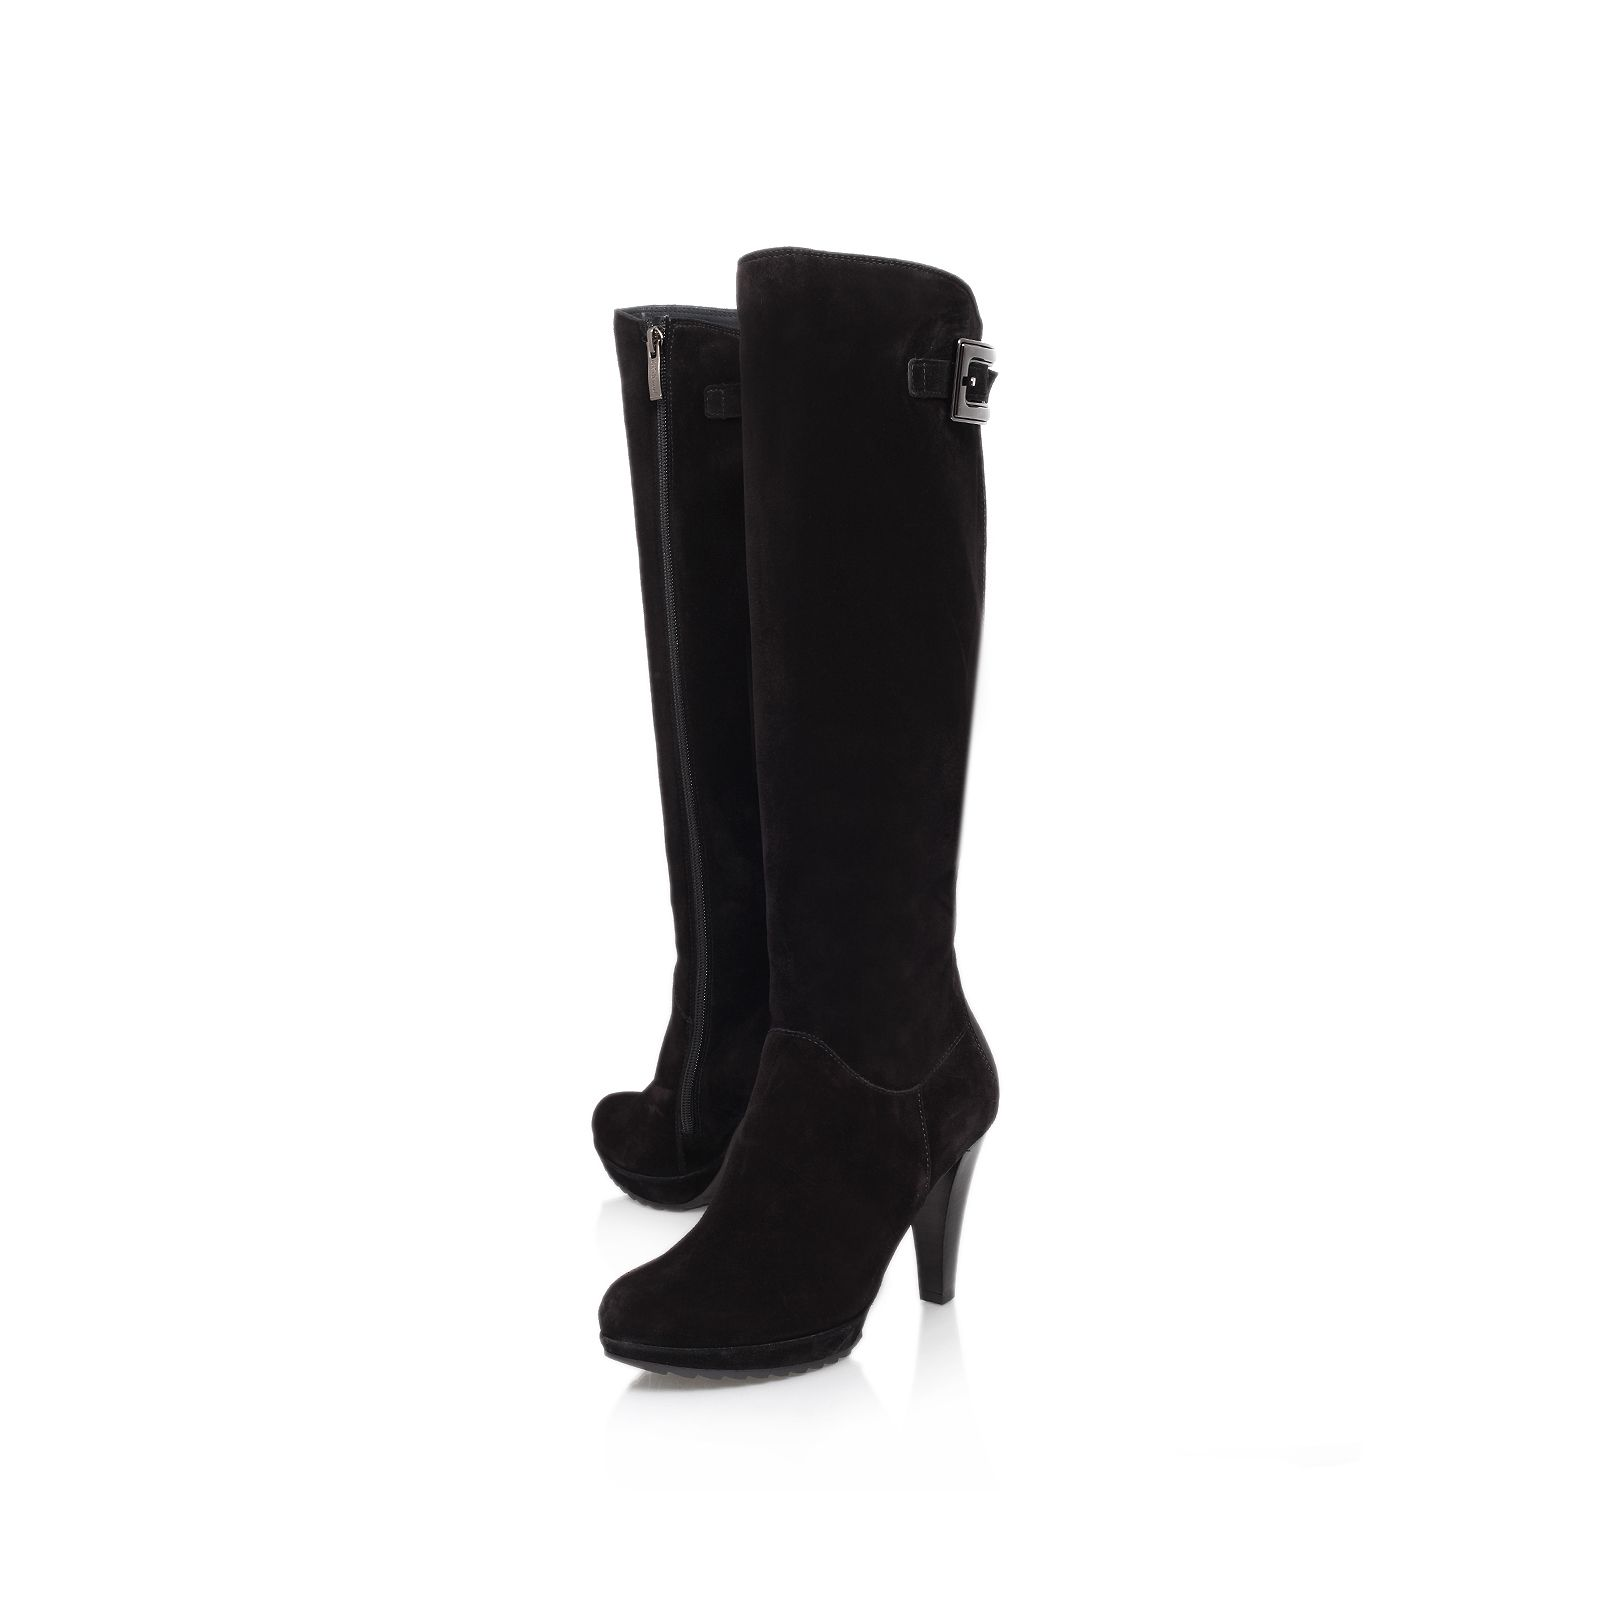 Celeste High Heeled Knee High Boot